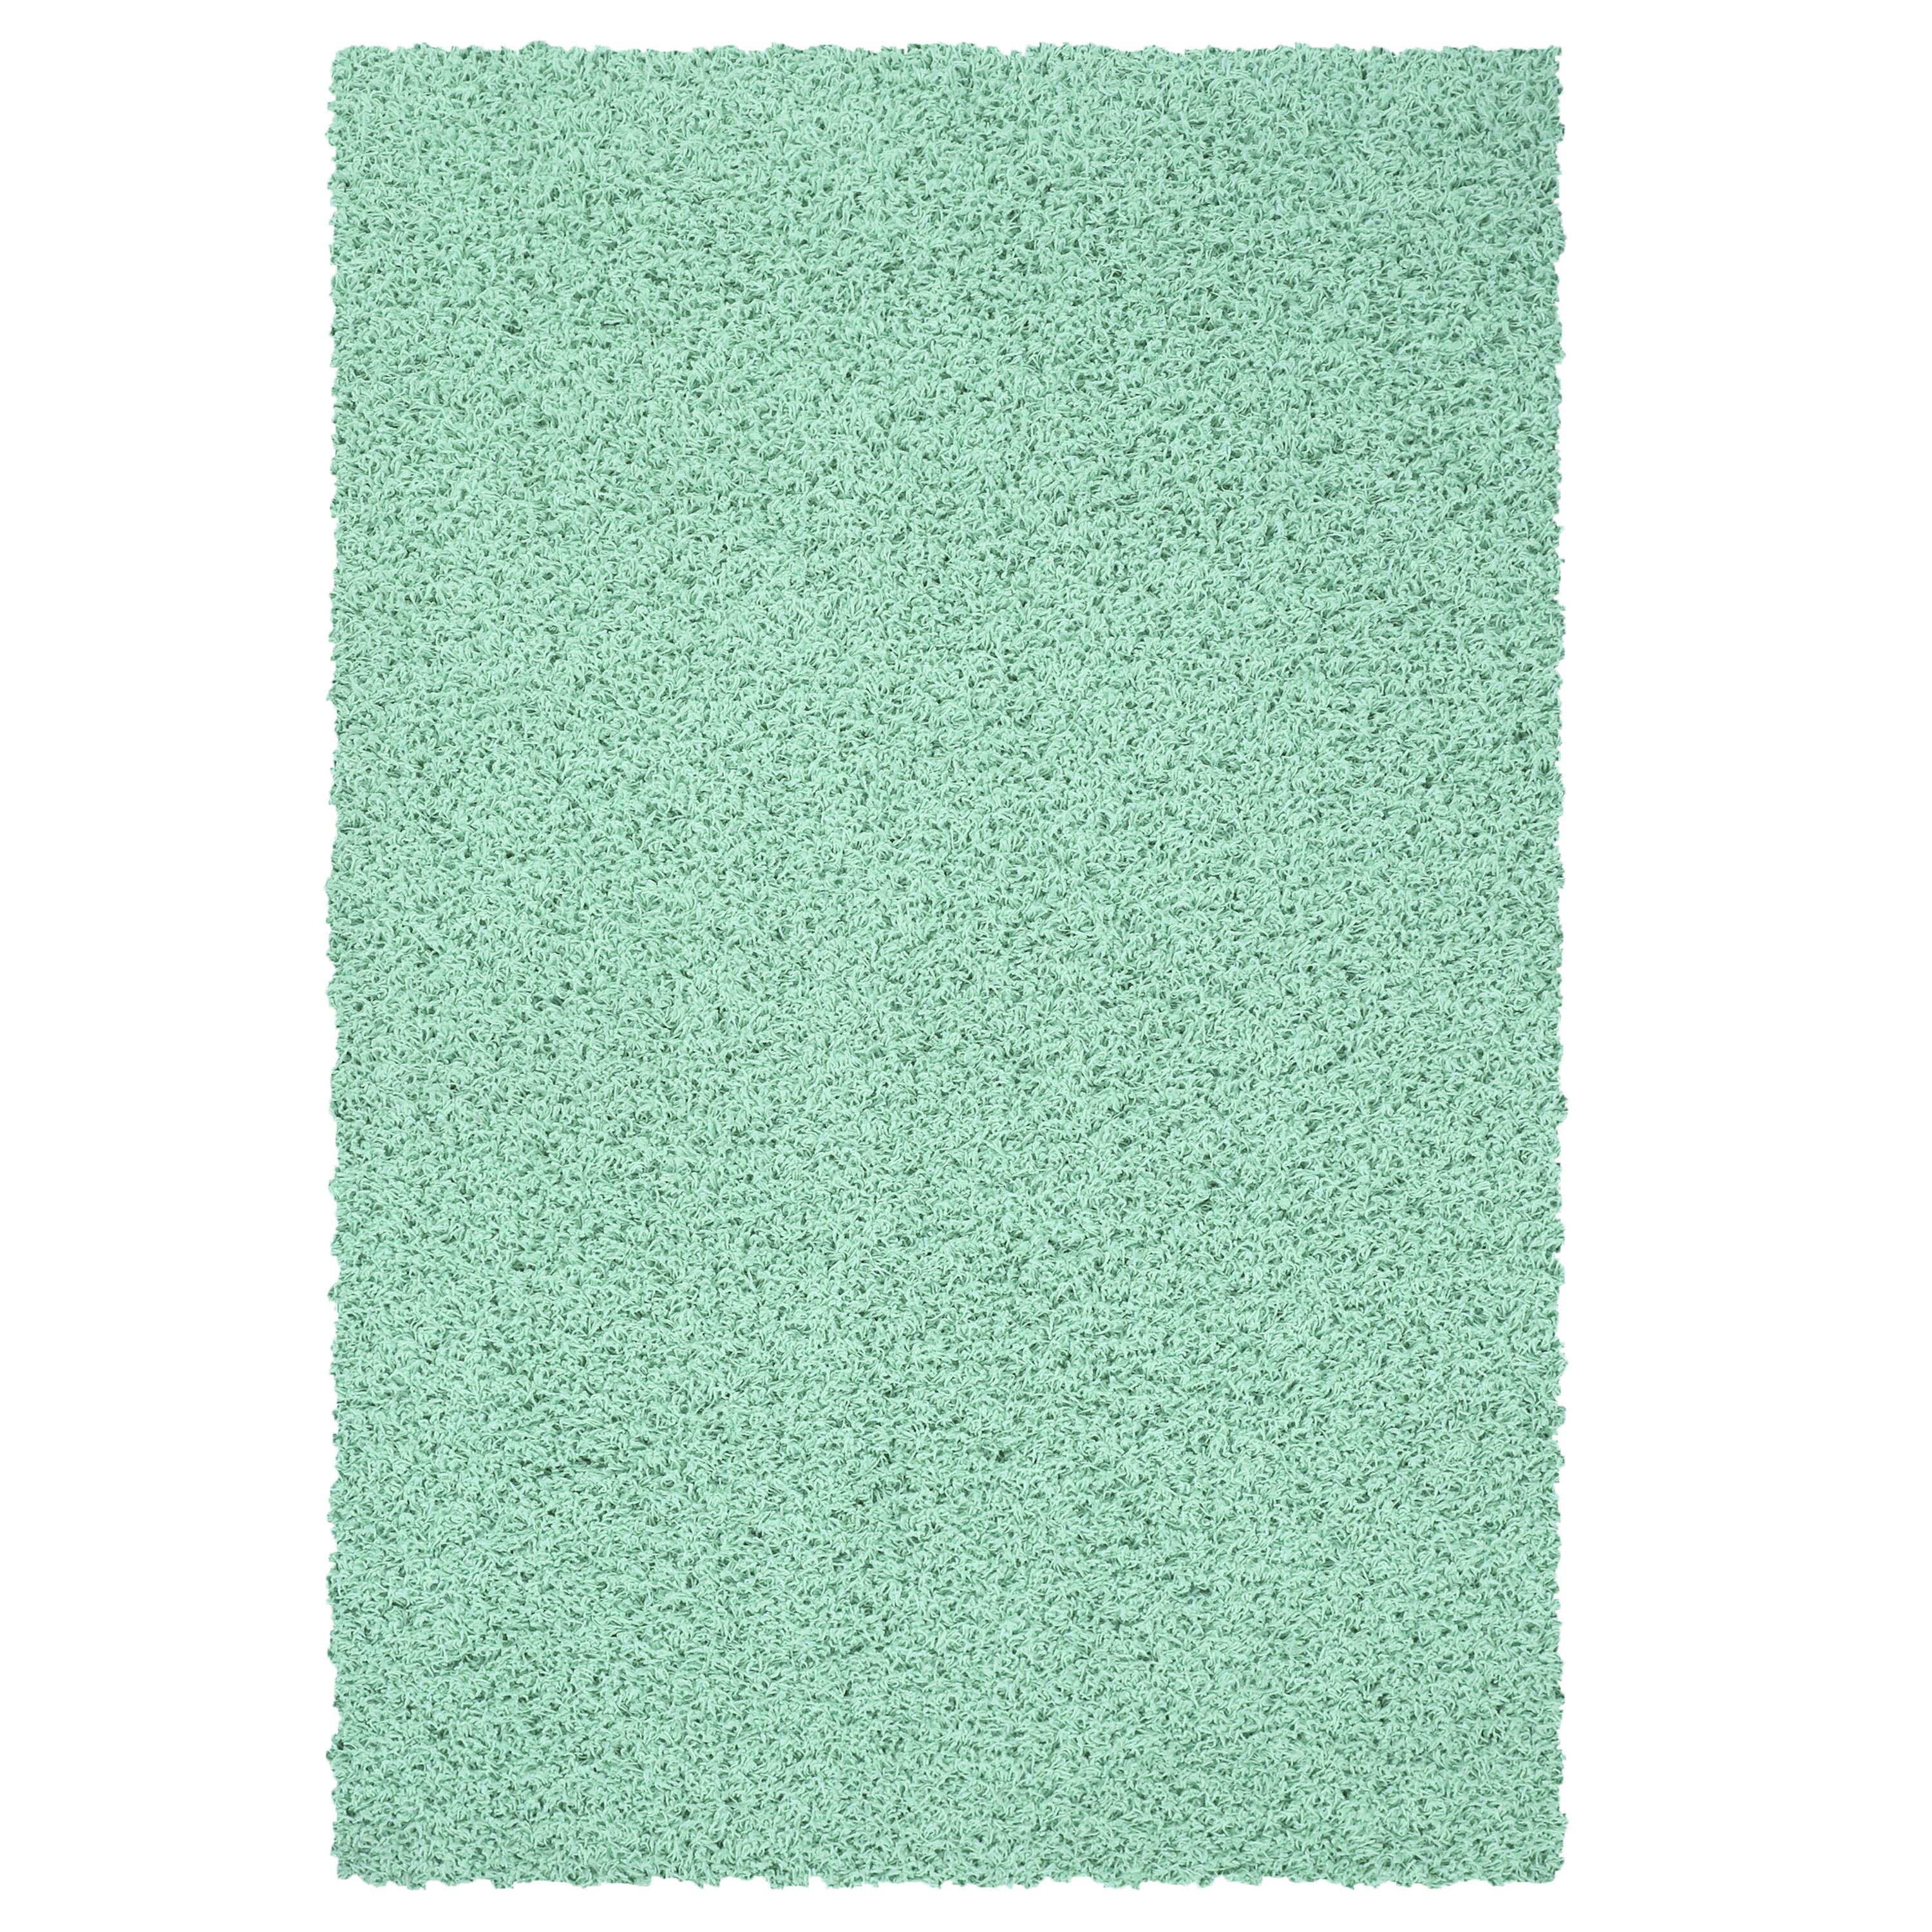 Your Zone Solid Textured Polyester Shag Rug Collection, Multiple Sizes and Colors